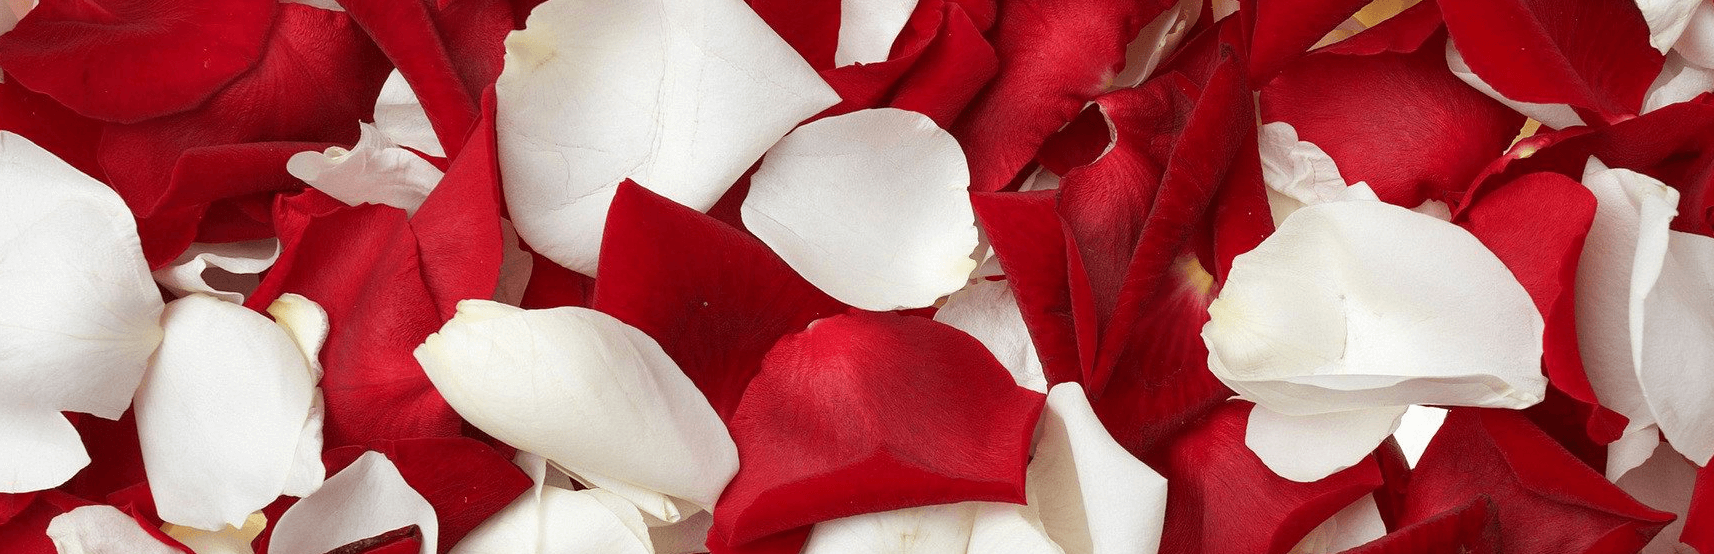 Red and white rose petals.